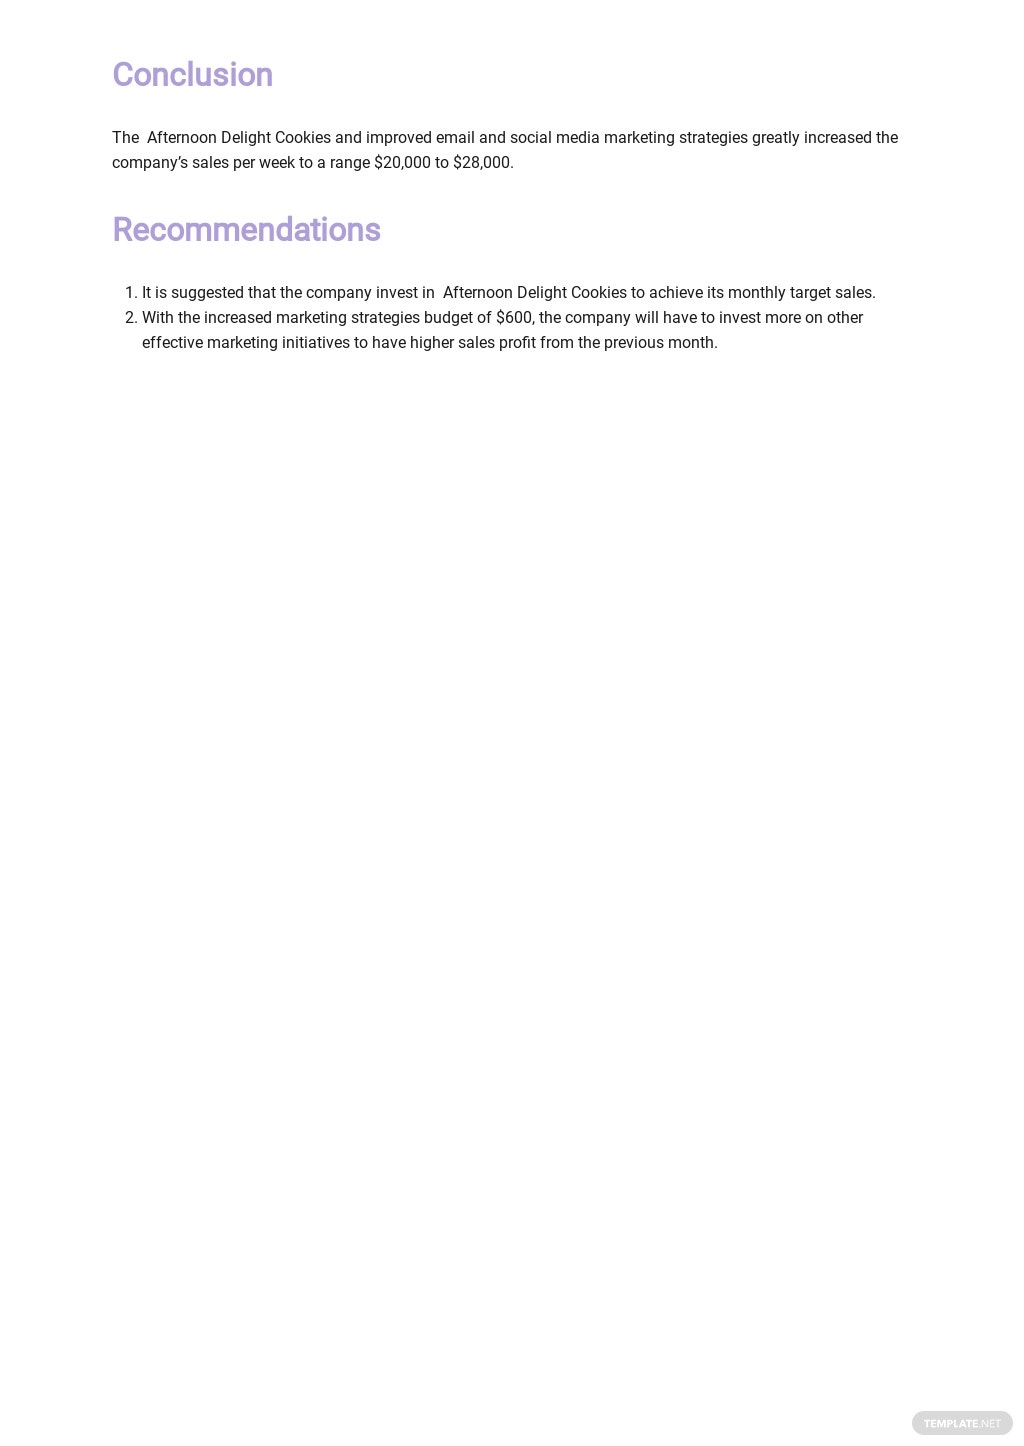 Product Analysis Report Template 3.jpe